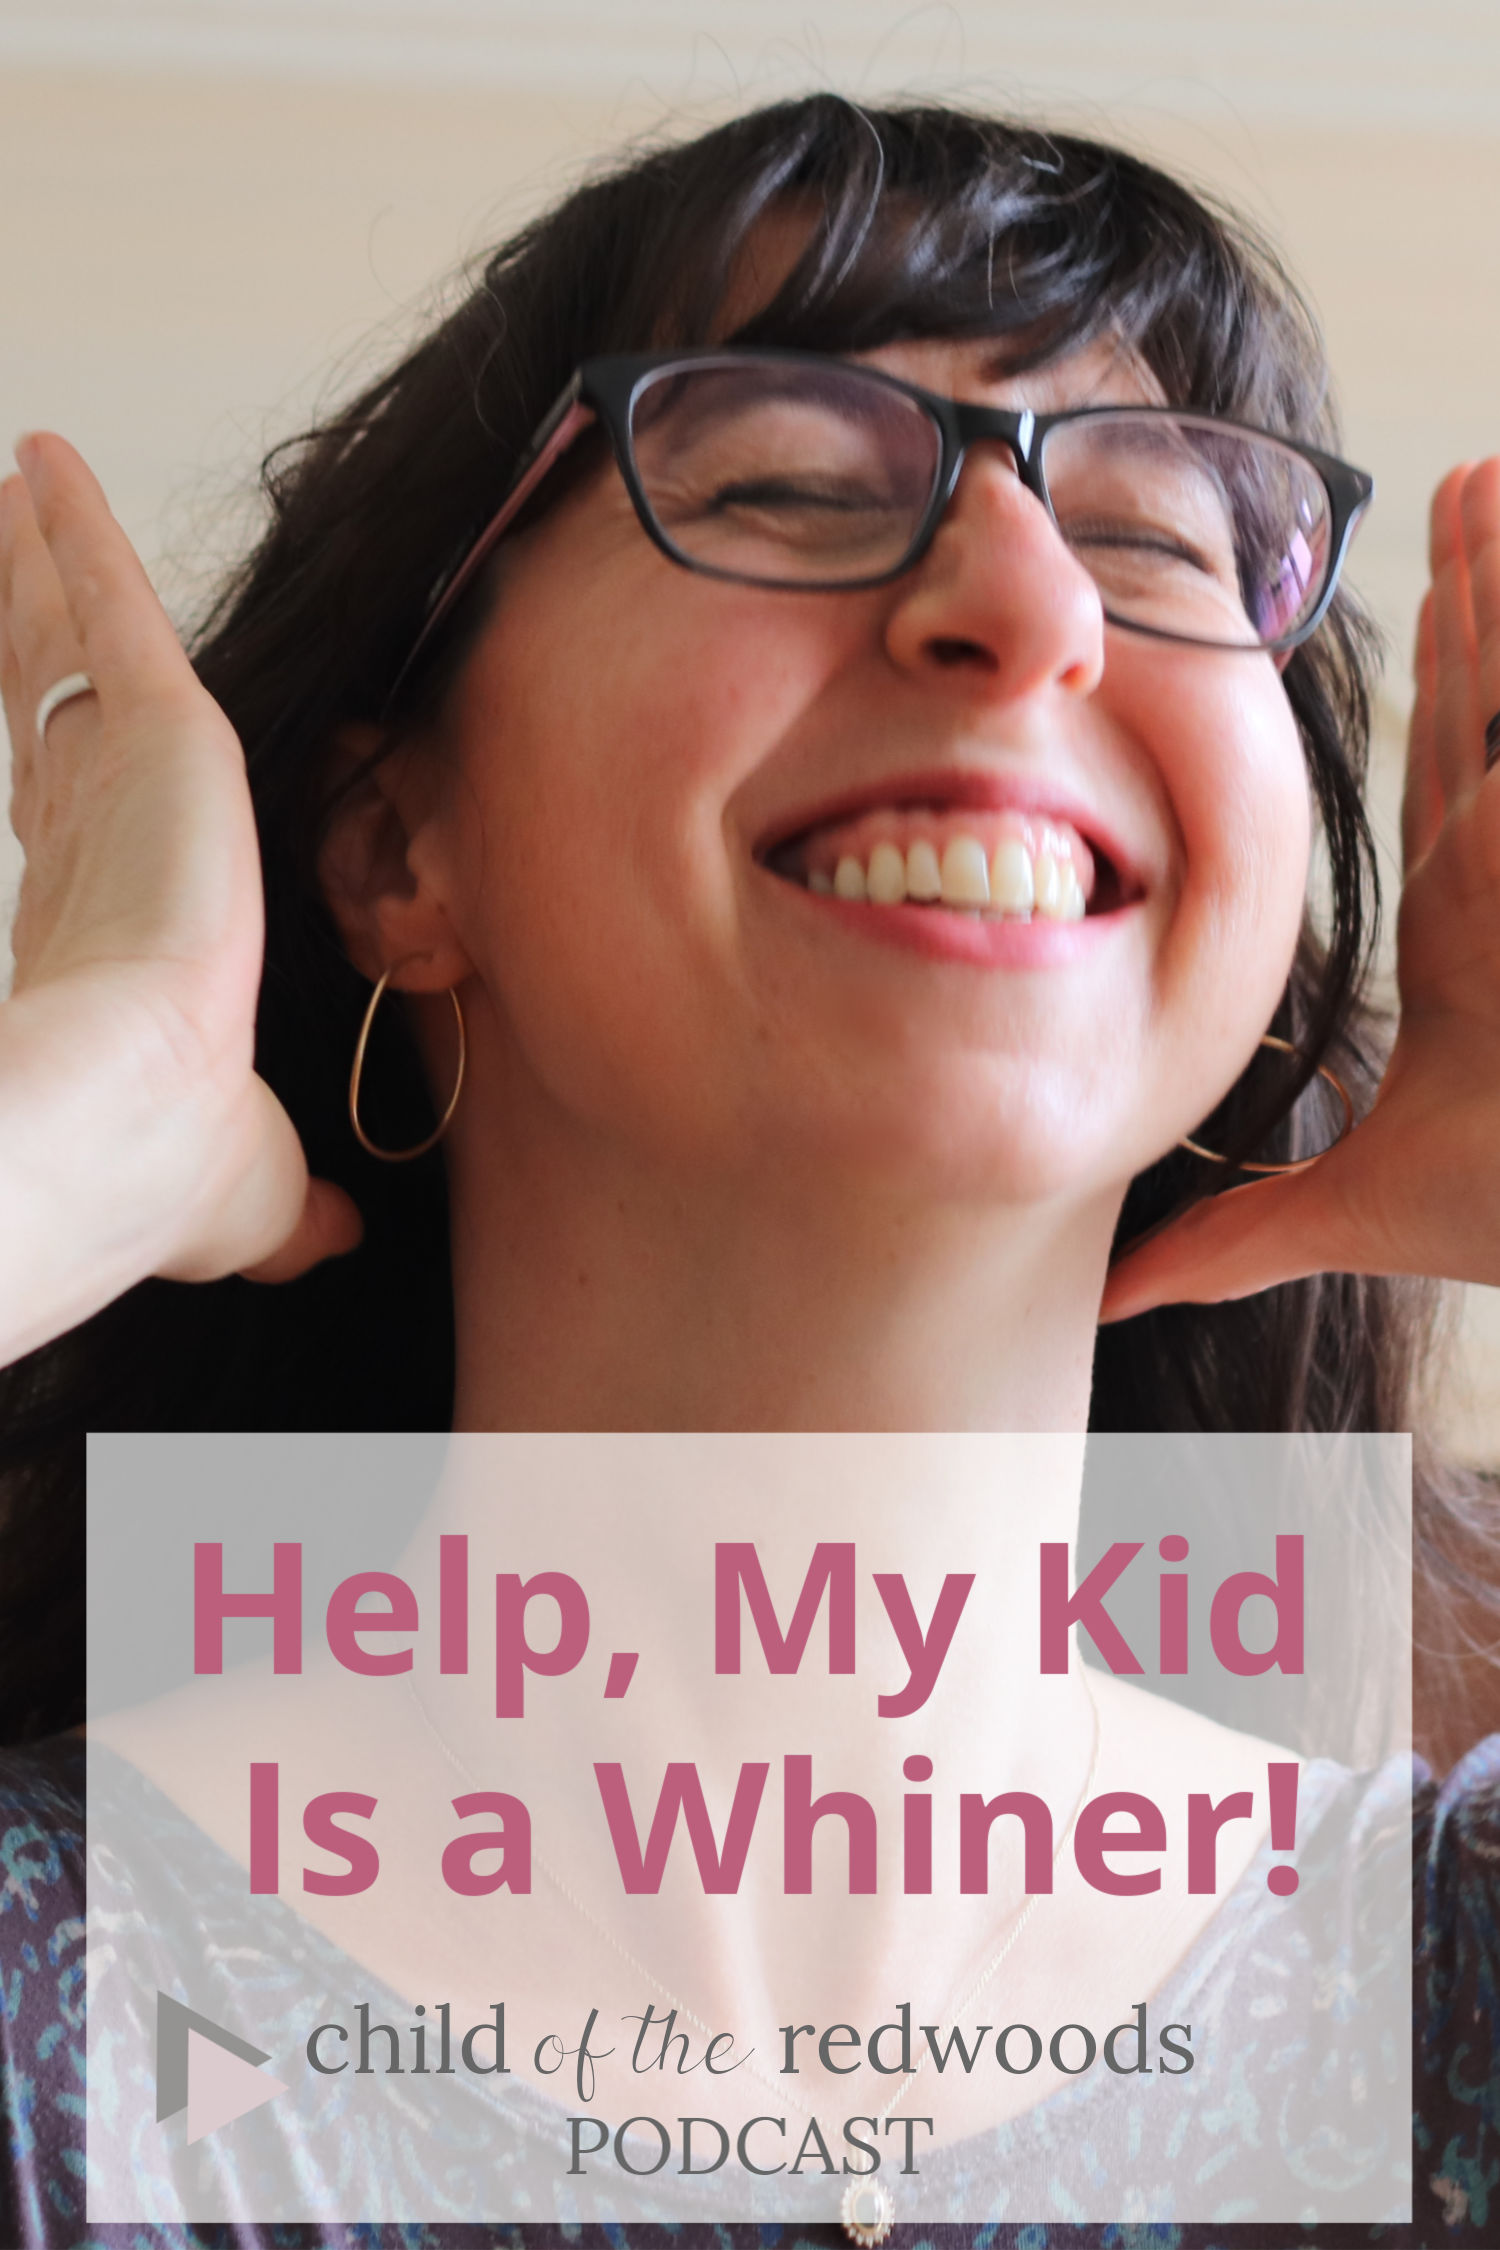 Help, my kid is a whiner podcast